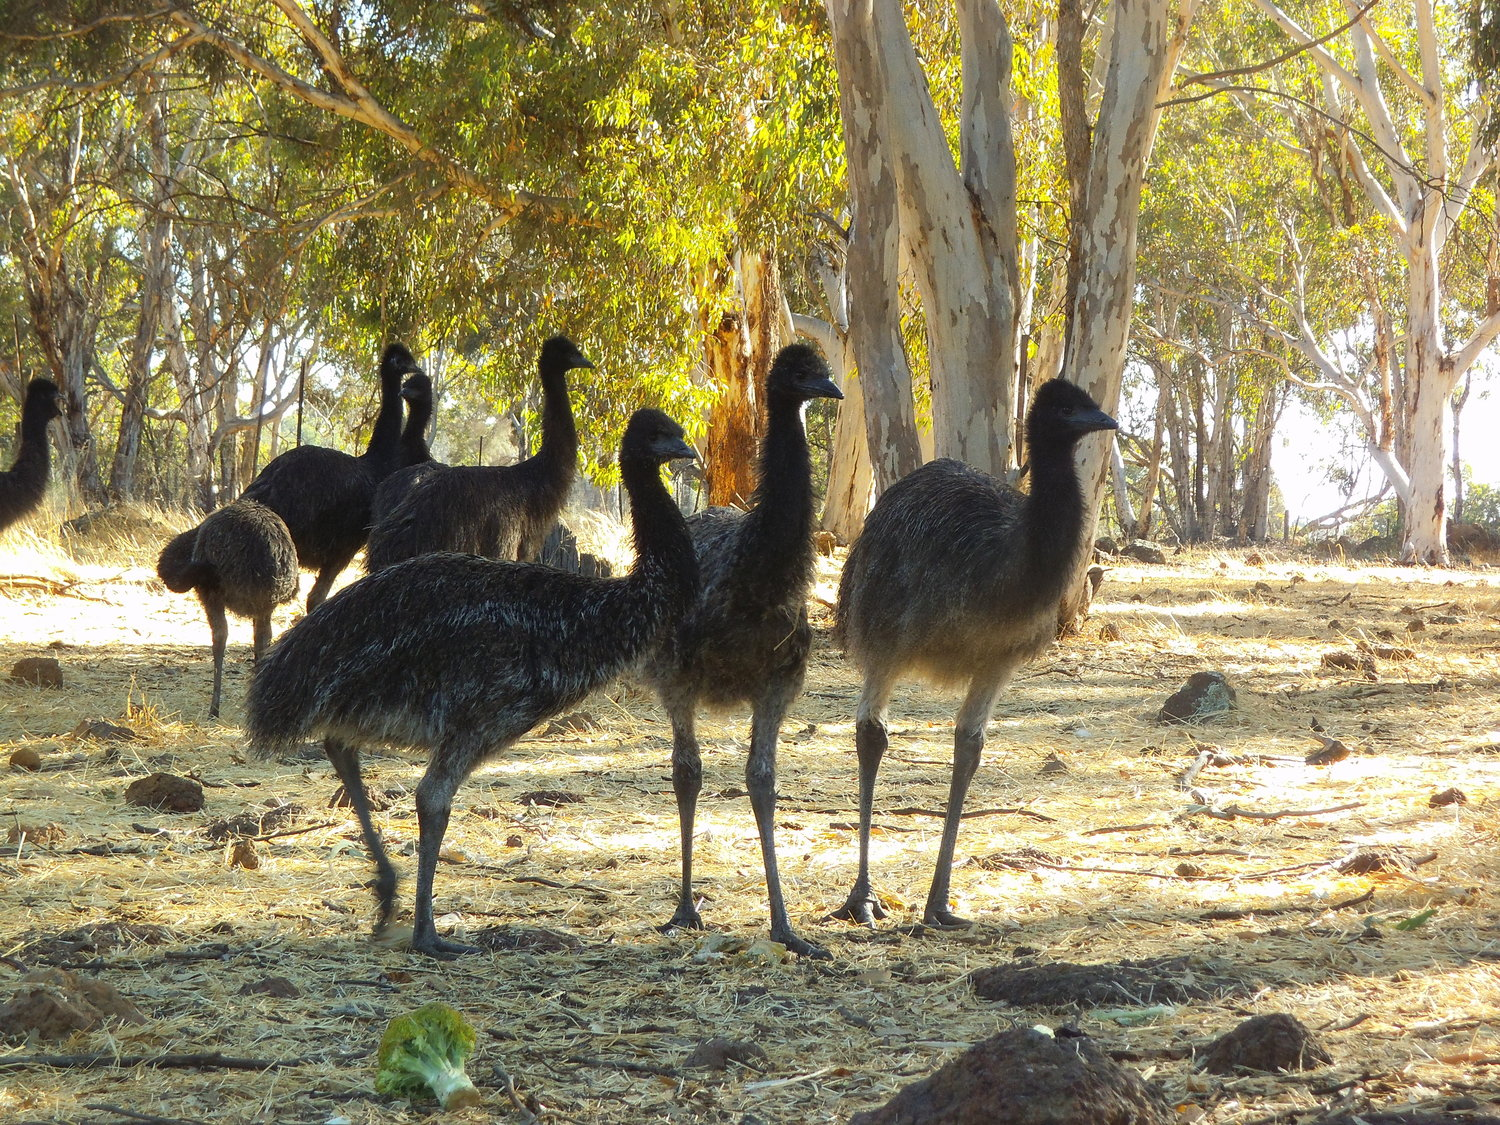 The indigenous people of Australia were the first users of emu oil